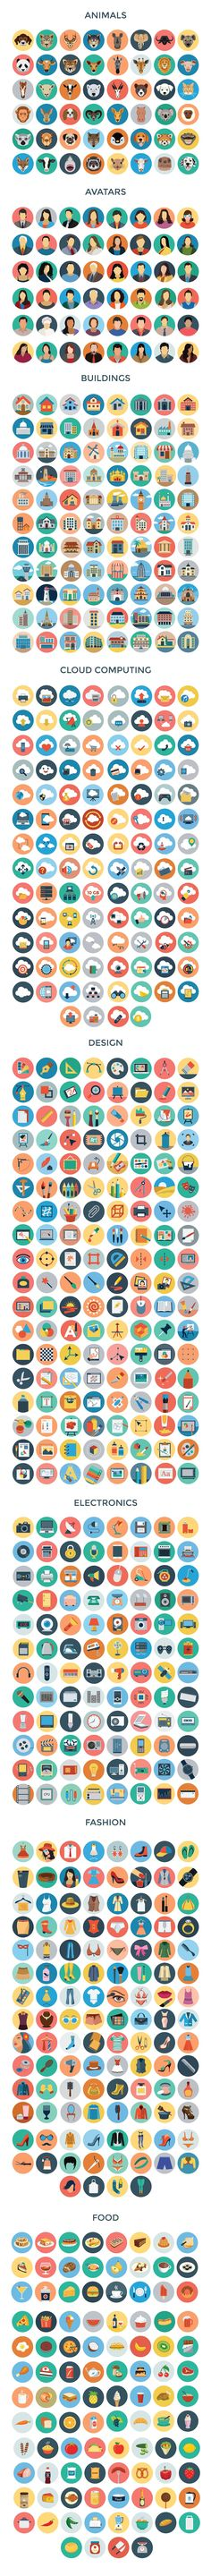 3200 Flat Vector Icons by Creative Stall on Creative Market Flat Design Icons, Icon Design, Flat Icons, Design Ui, Graphic Design, Halloween Icons, Halloween Office, Currency Symbol, Building Icon